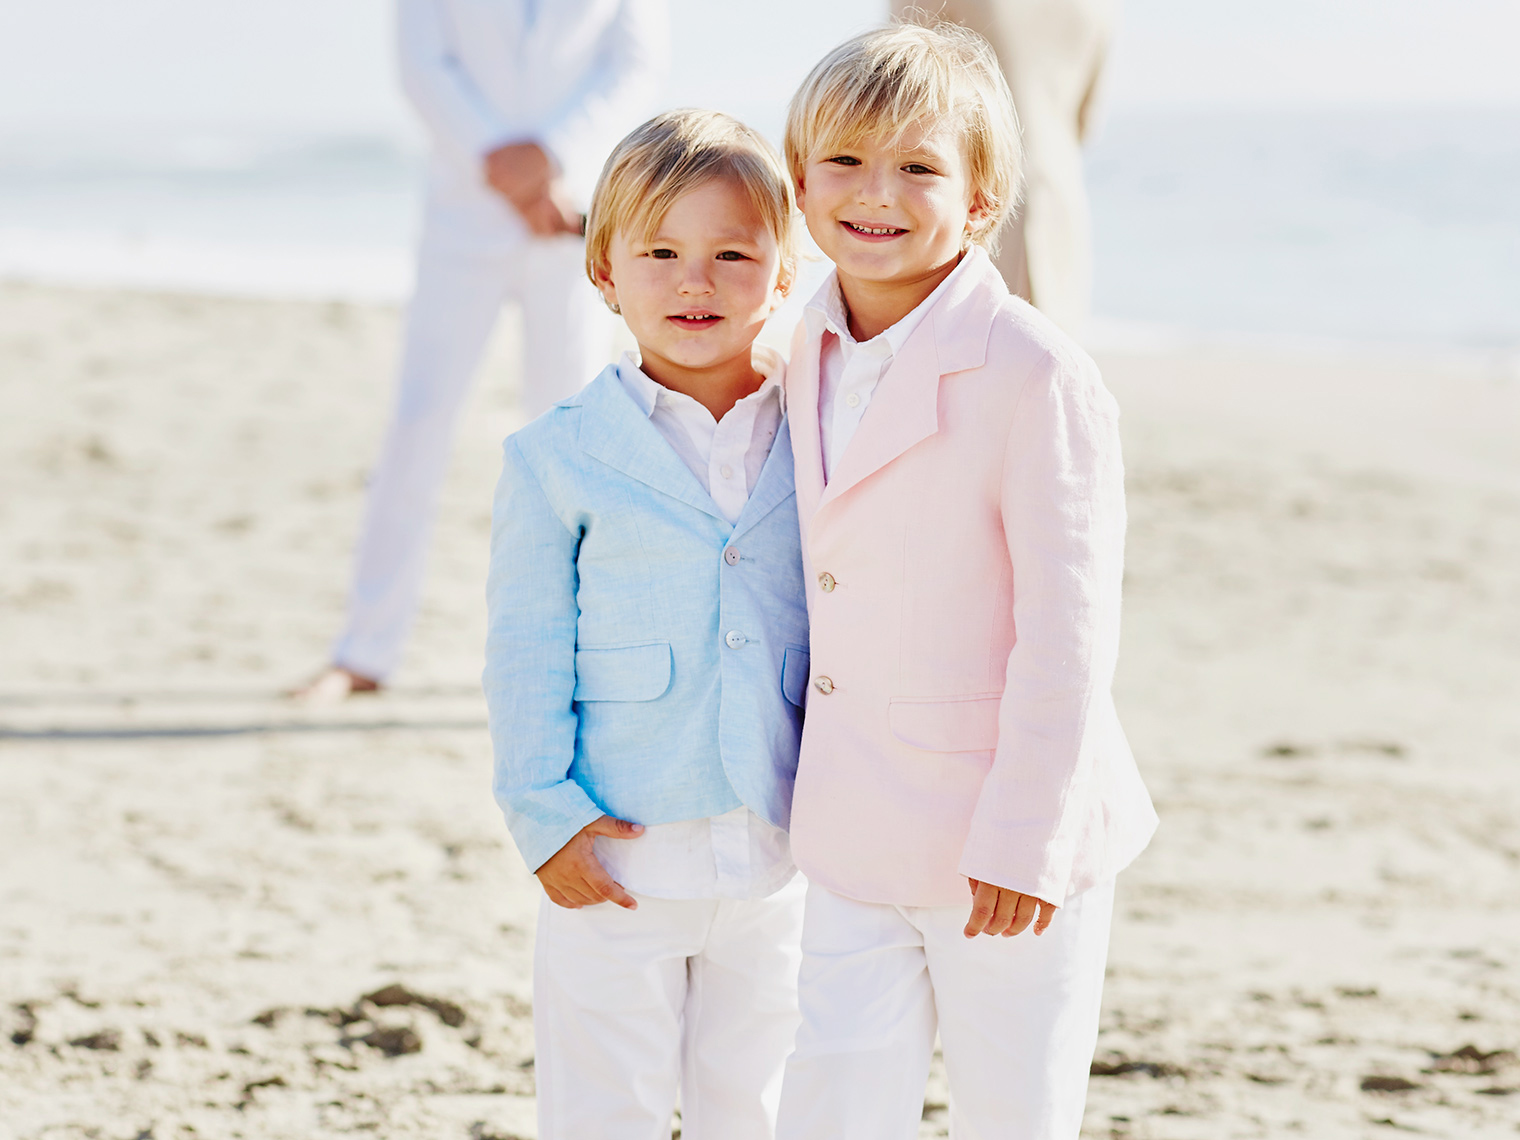 Children at beach wedding in Laguna Beach, California